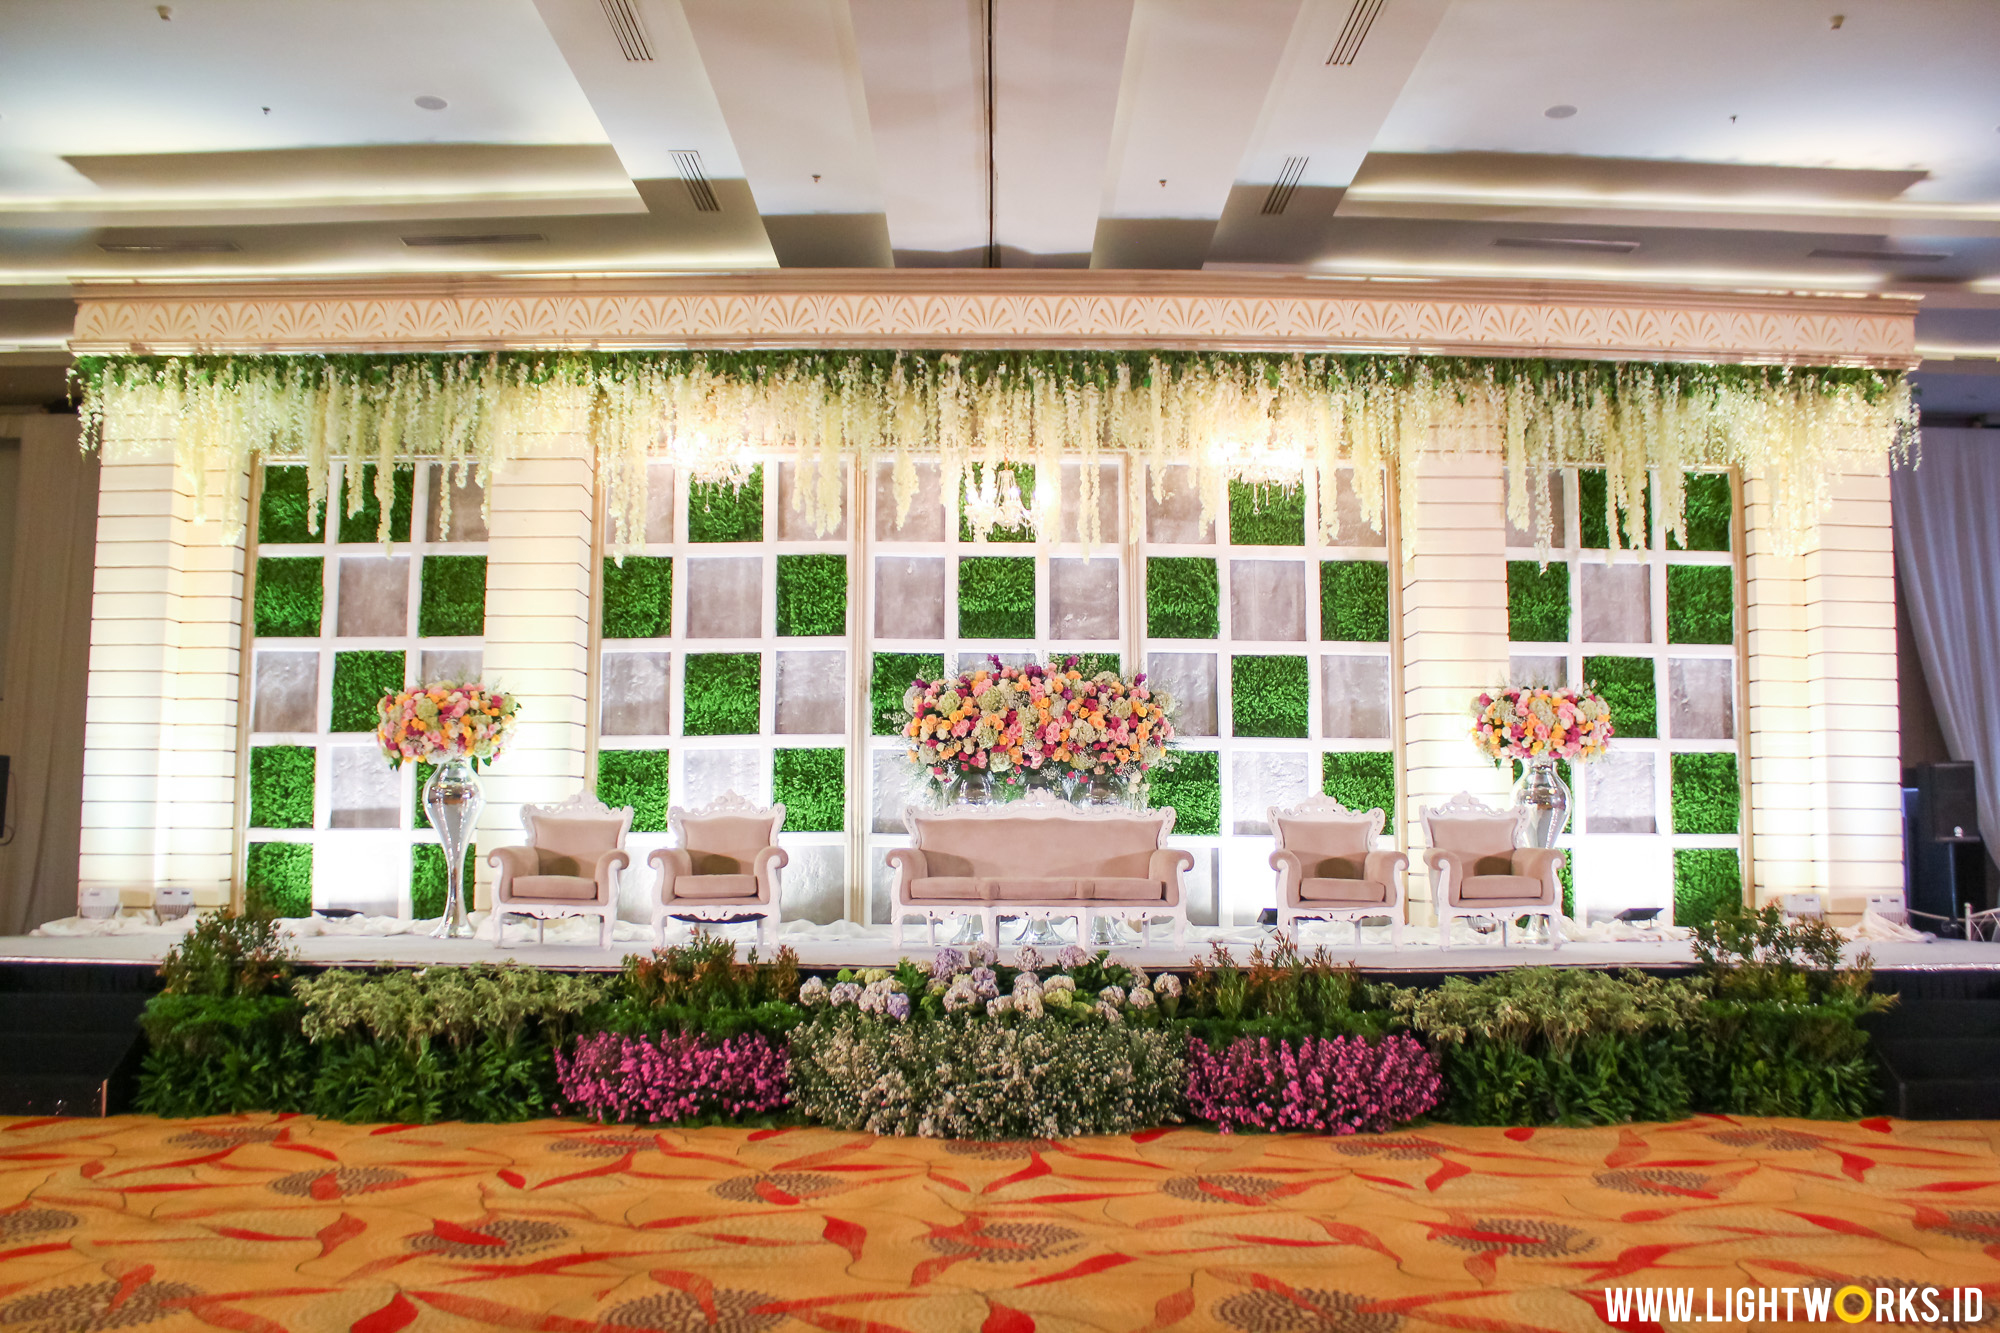 Wedding of Julfendra and Mell | Venue at Discovery Convention and Hotel Ancol | Decoration by White Pearl Decoration | Organised by Partee Organiser | MC: Adi Chandra | Entertainment by Red Velvet Entertainment | Handbouquet by Pre Fleur Indonesia | Suit by Wong Hang Tailor | Gown by Ritz Taipei | Make up artist by Winnie Neuman | Photo and video by Maximus Pictures | Wedding cake by Eiffel Cake | Wedding car by Fendi Wedding Car | Photobooth by Mustard Photobooth | Souvenir by Fine Wedding Souvenir | Wedding Ring by Miss Mondial | Groom's Corsage by Smitten | Lighting by Lightworks